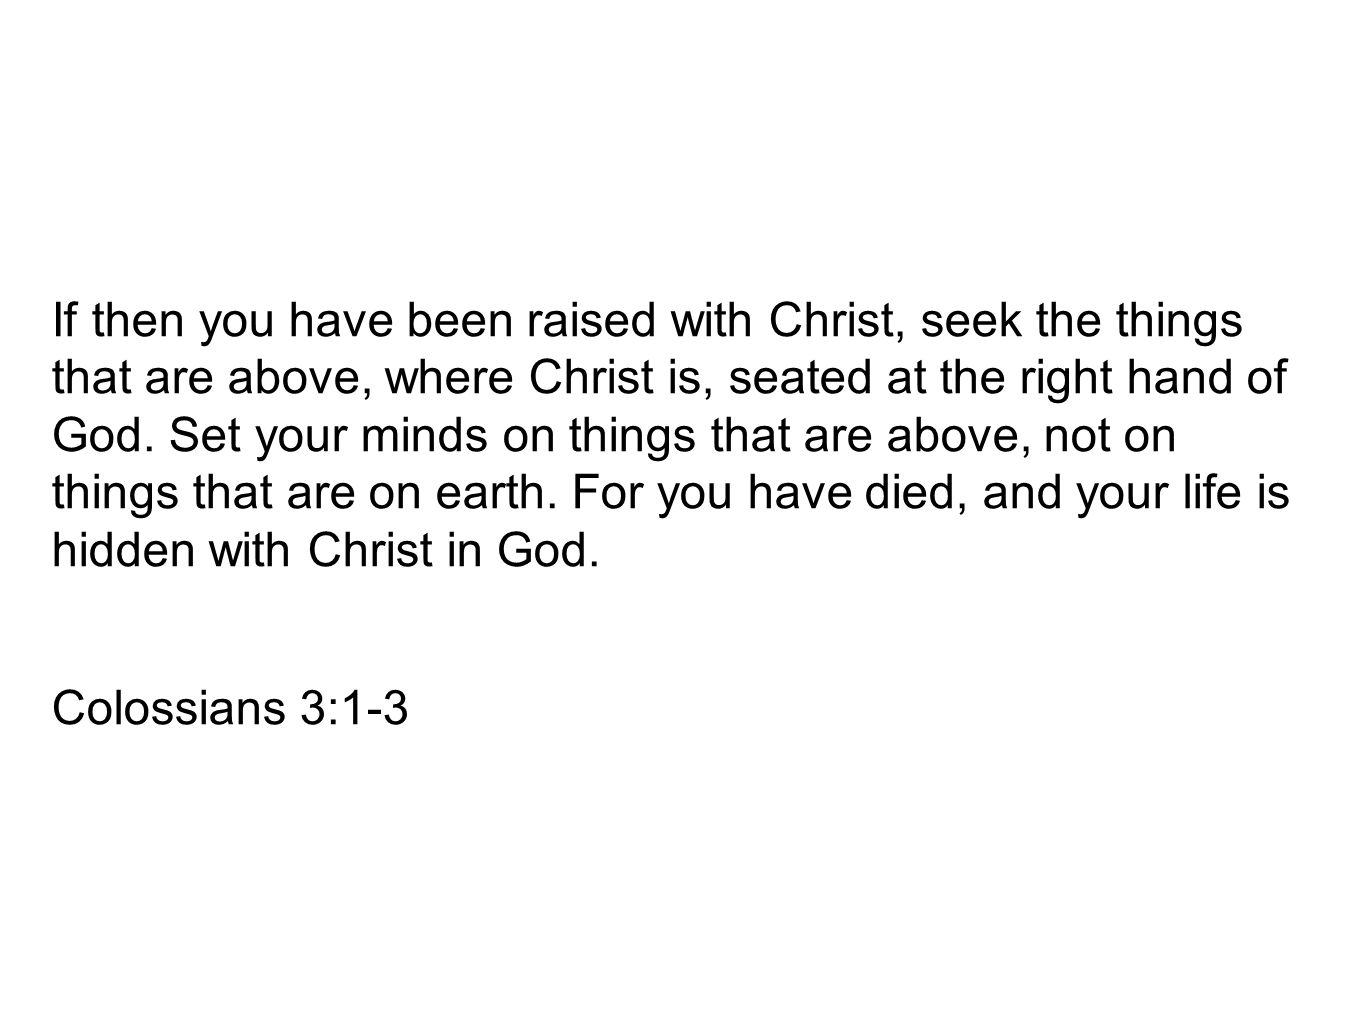 If then you have been raised with Christ, seek the things that are above, where Christ is, seated at the right hand of God. Set your minds on things that are above, not on things that are on earth. For you have died, and your life is hidden with Christ in God.